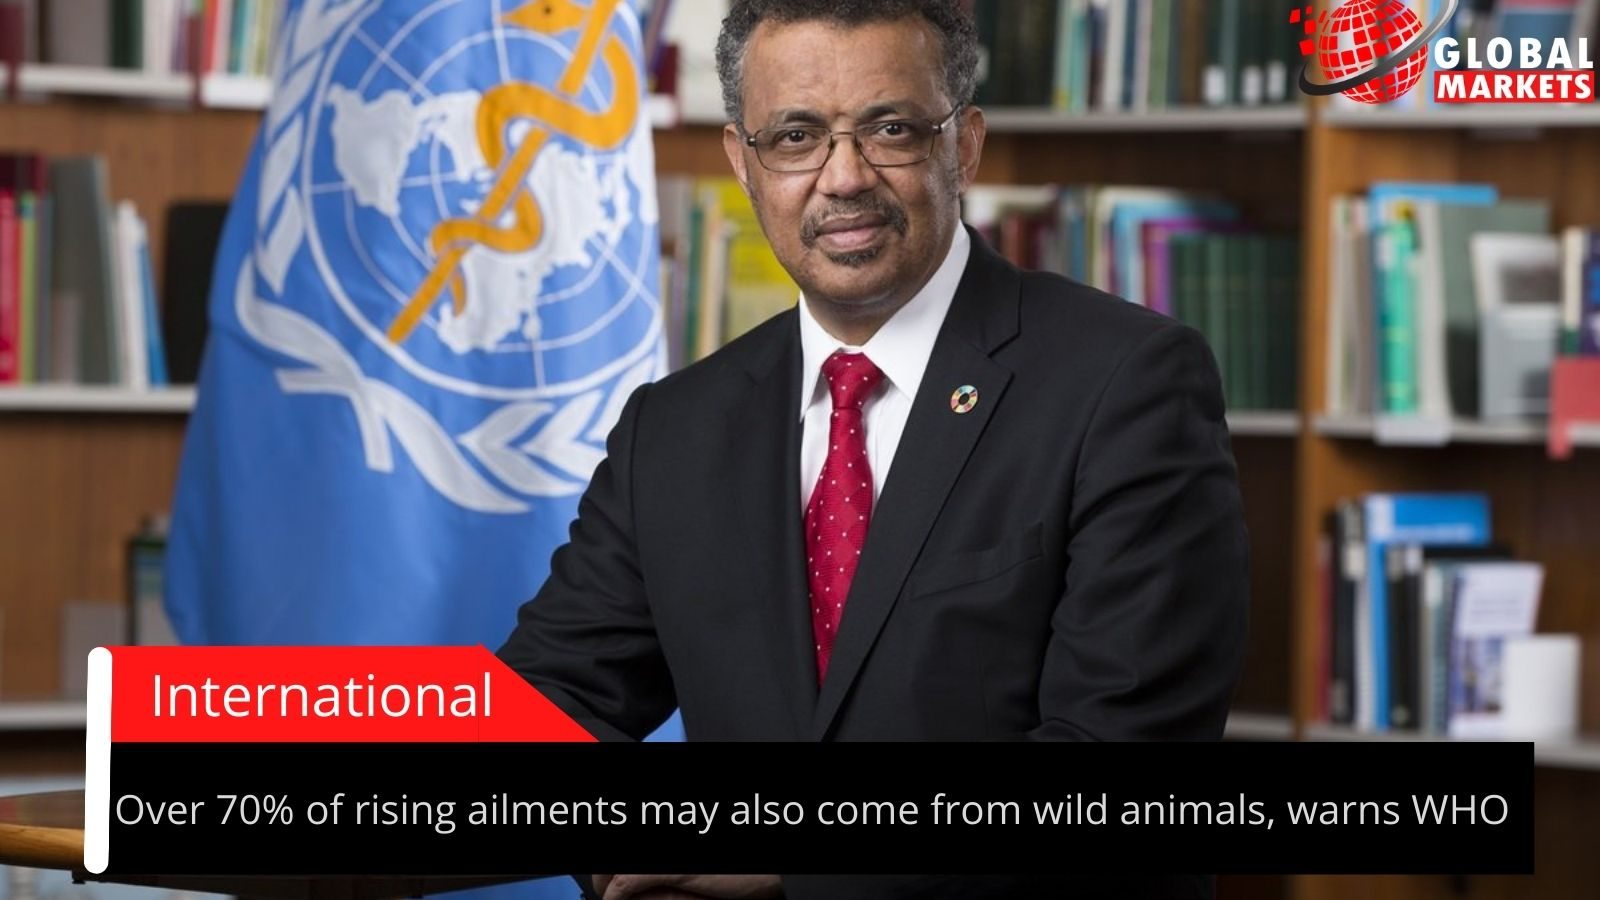 Over 70% of rising ailments may also come from wild animals, warns WHO